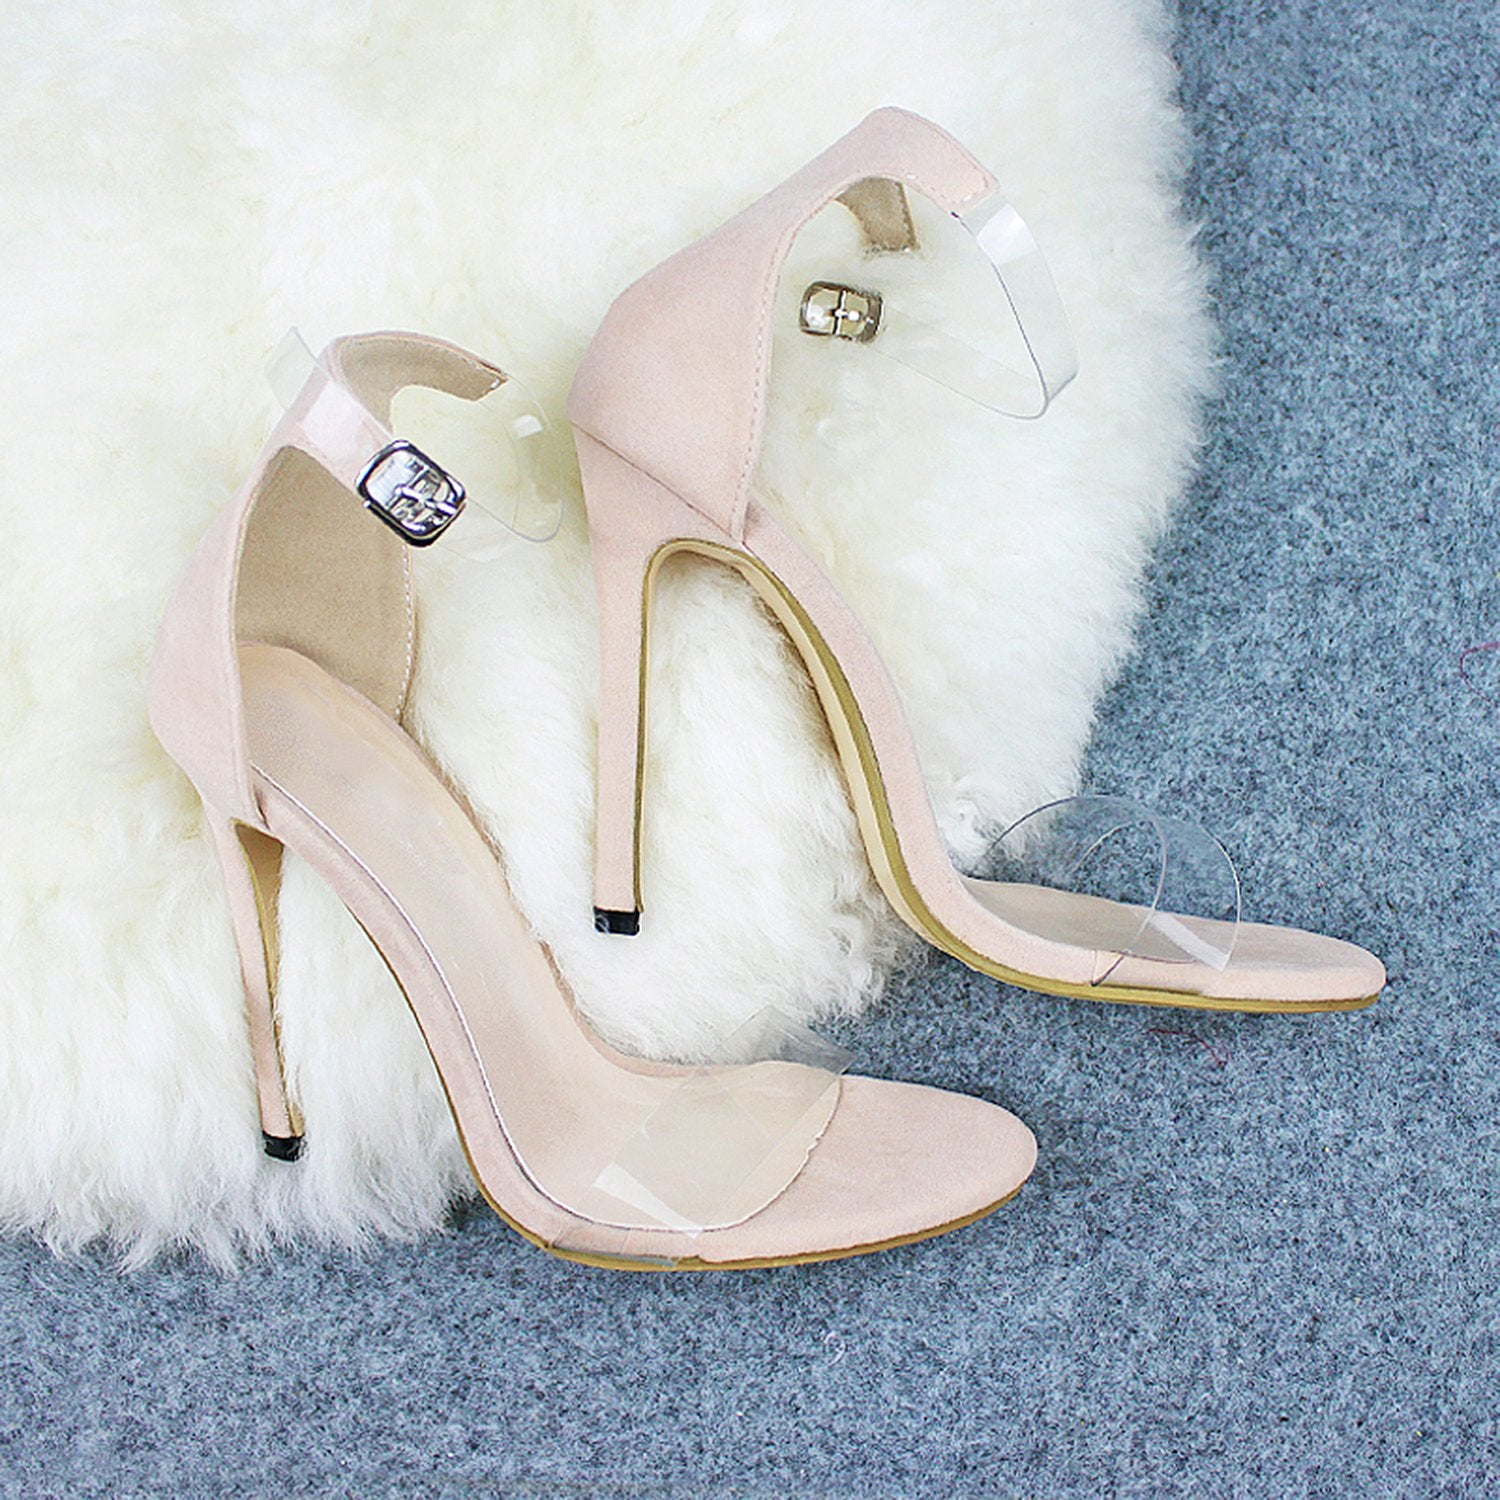 Transparent PVC Peep Toe Stilettos High Heel Sandals